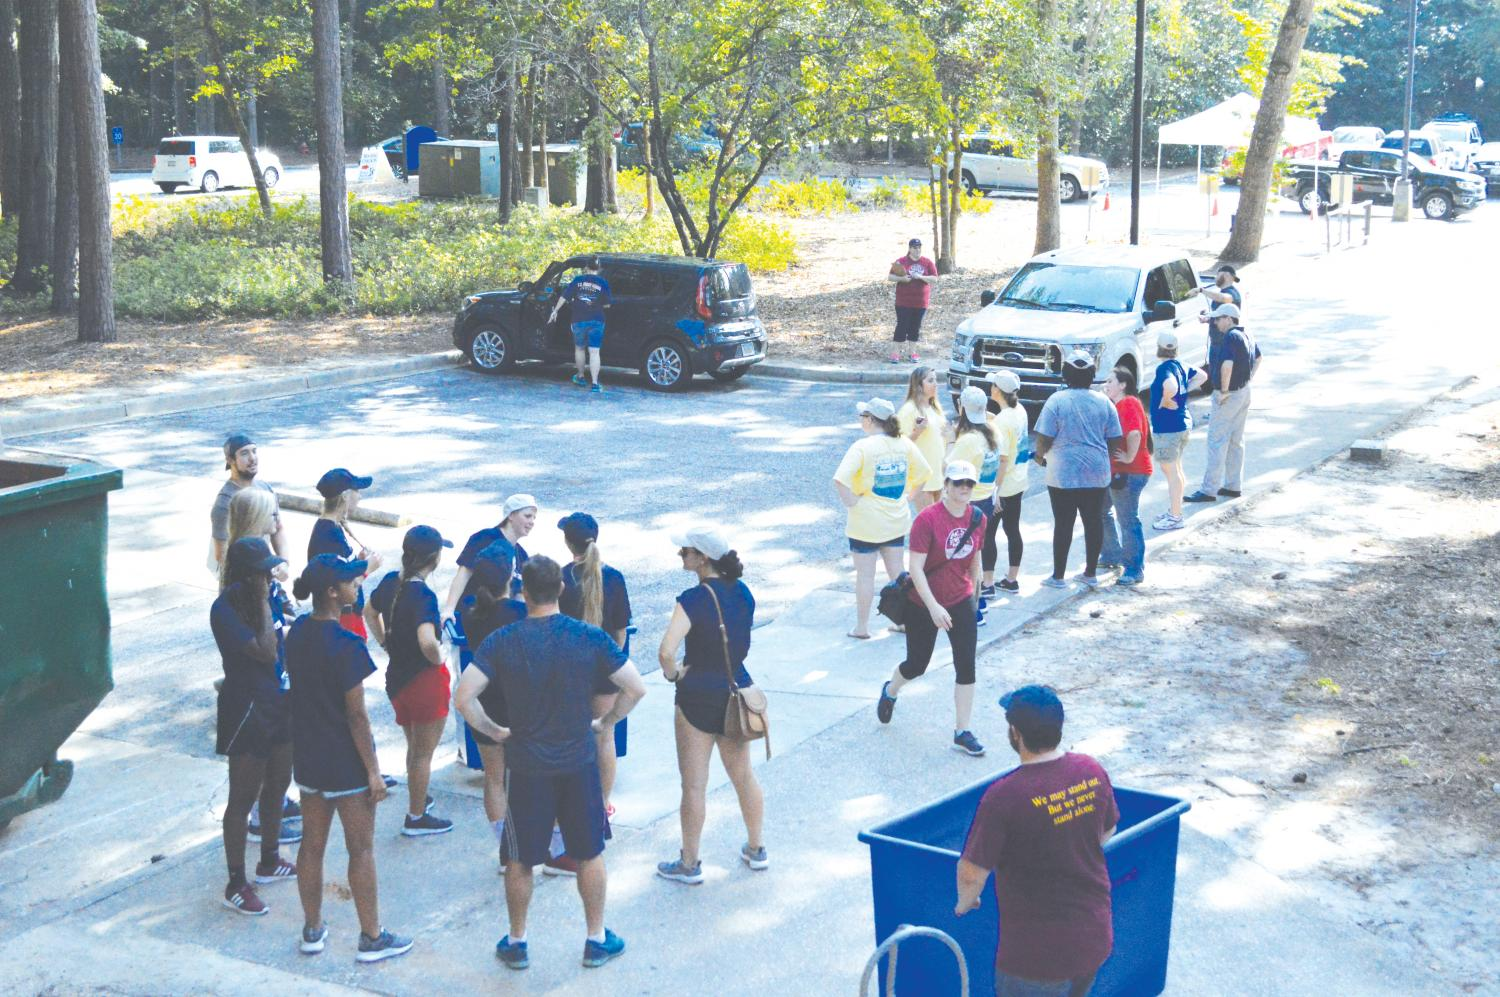 FMU faculty, staff and students help move in 575 new students during the Aug. 19 move-in day.